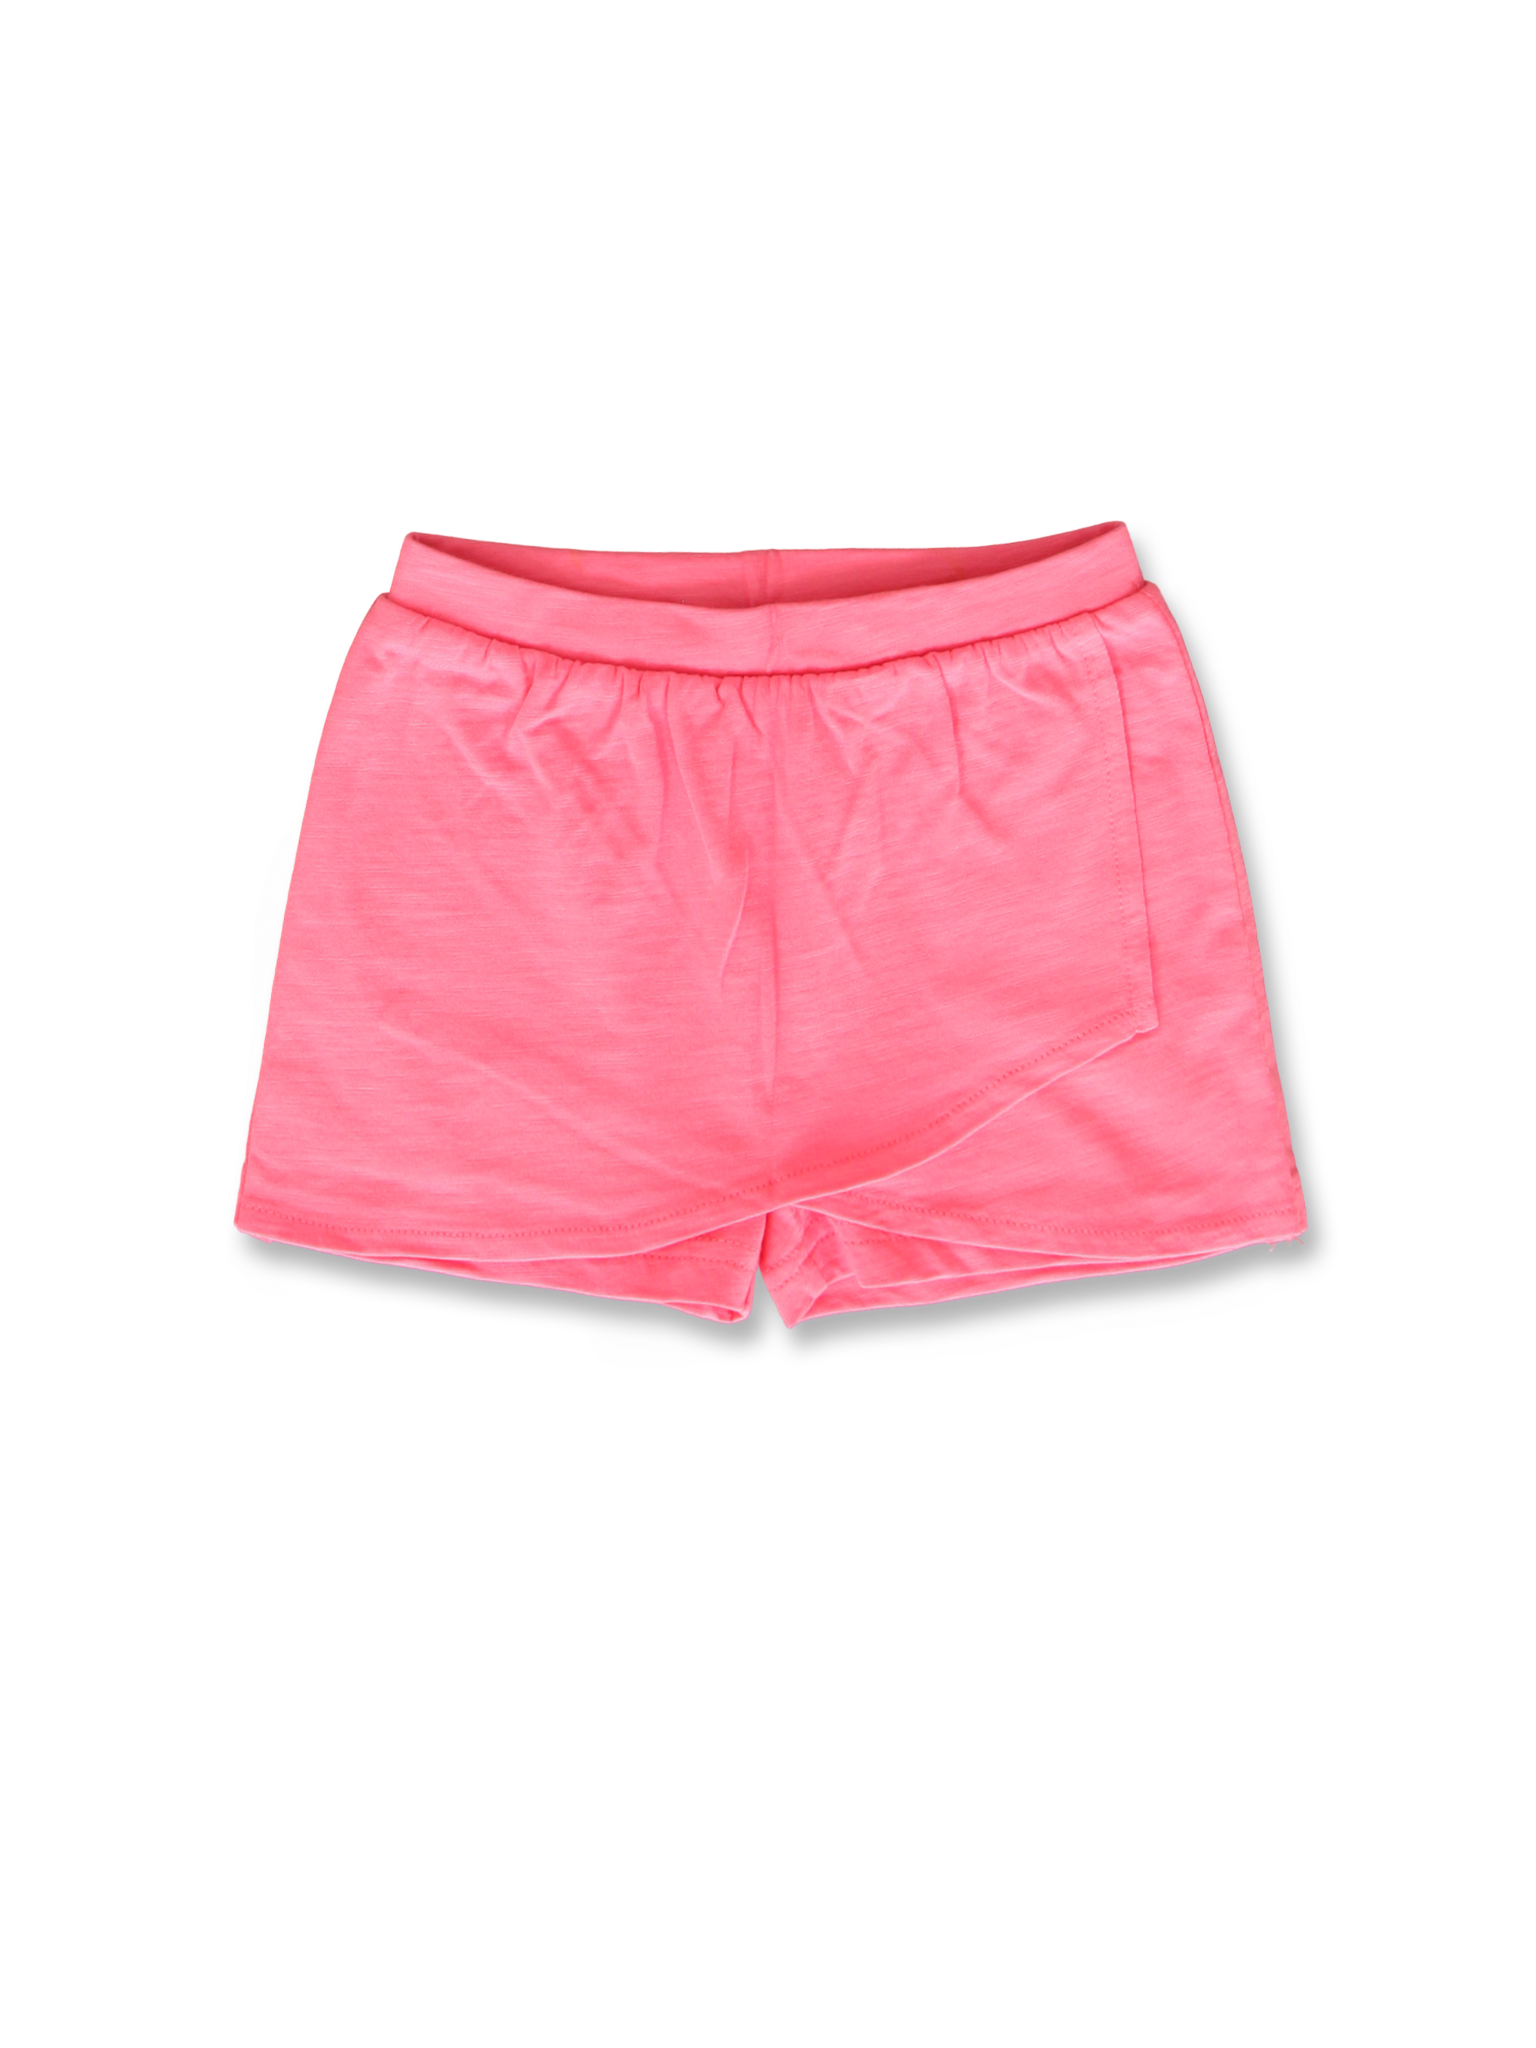 All Brands | Summerproducts Small Girls | Shorts | 18 pcs/box